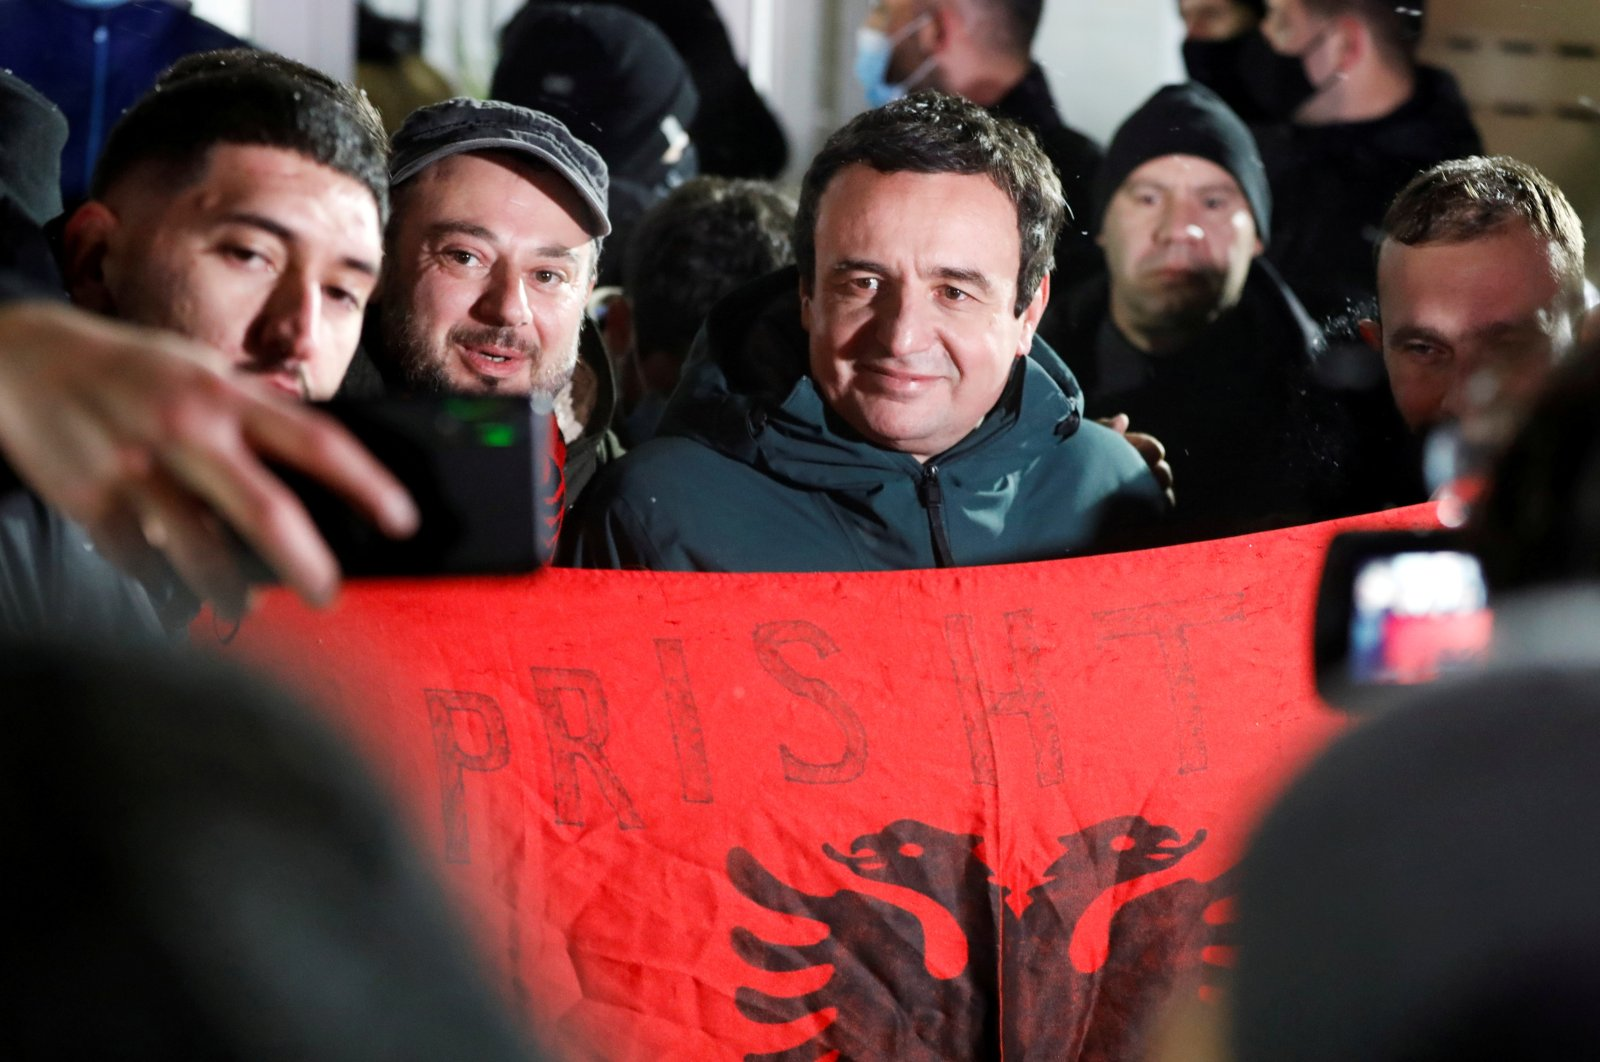 Vetevendosje! party leader Albin Kurti poses for a photo with supporters after preliminary results of the parliamentary election in Pristina, Kosovo, Feb. 15, 2021. (Reuters Photo)